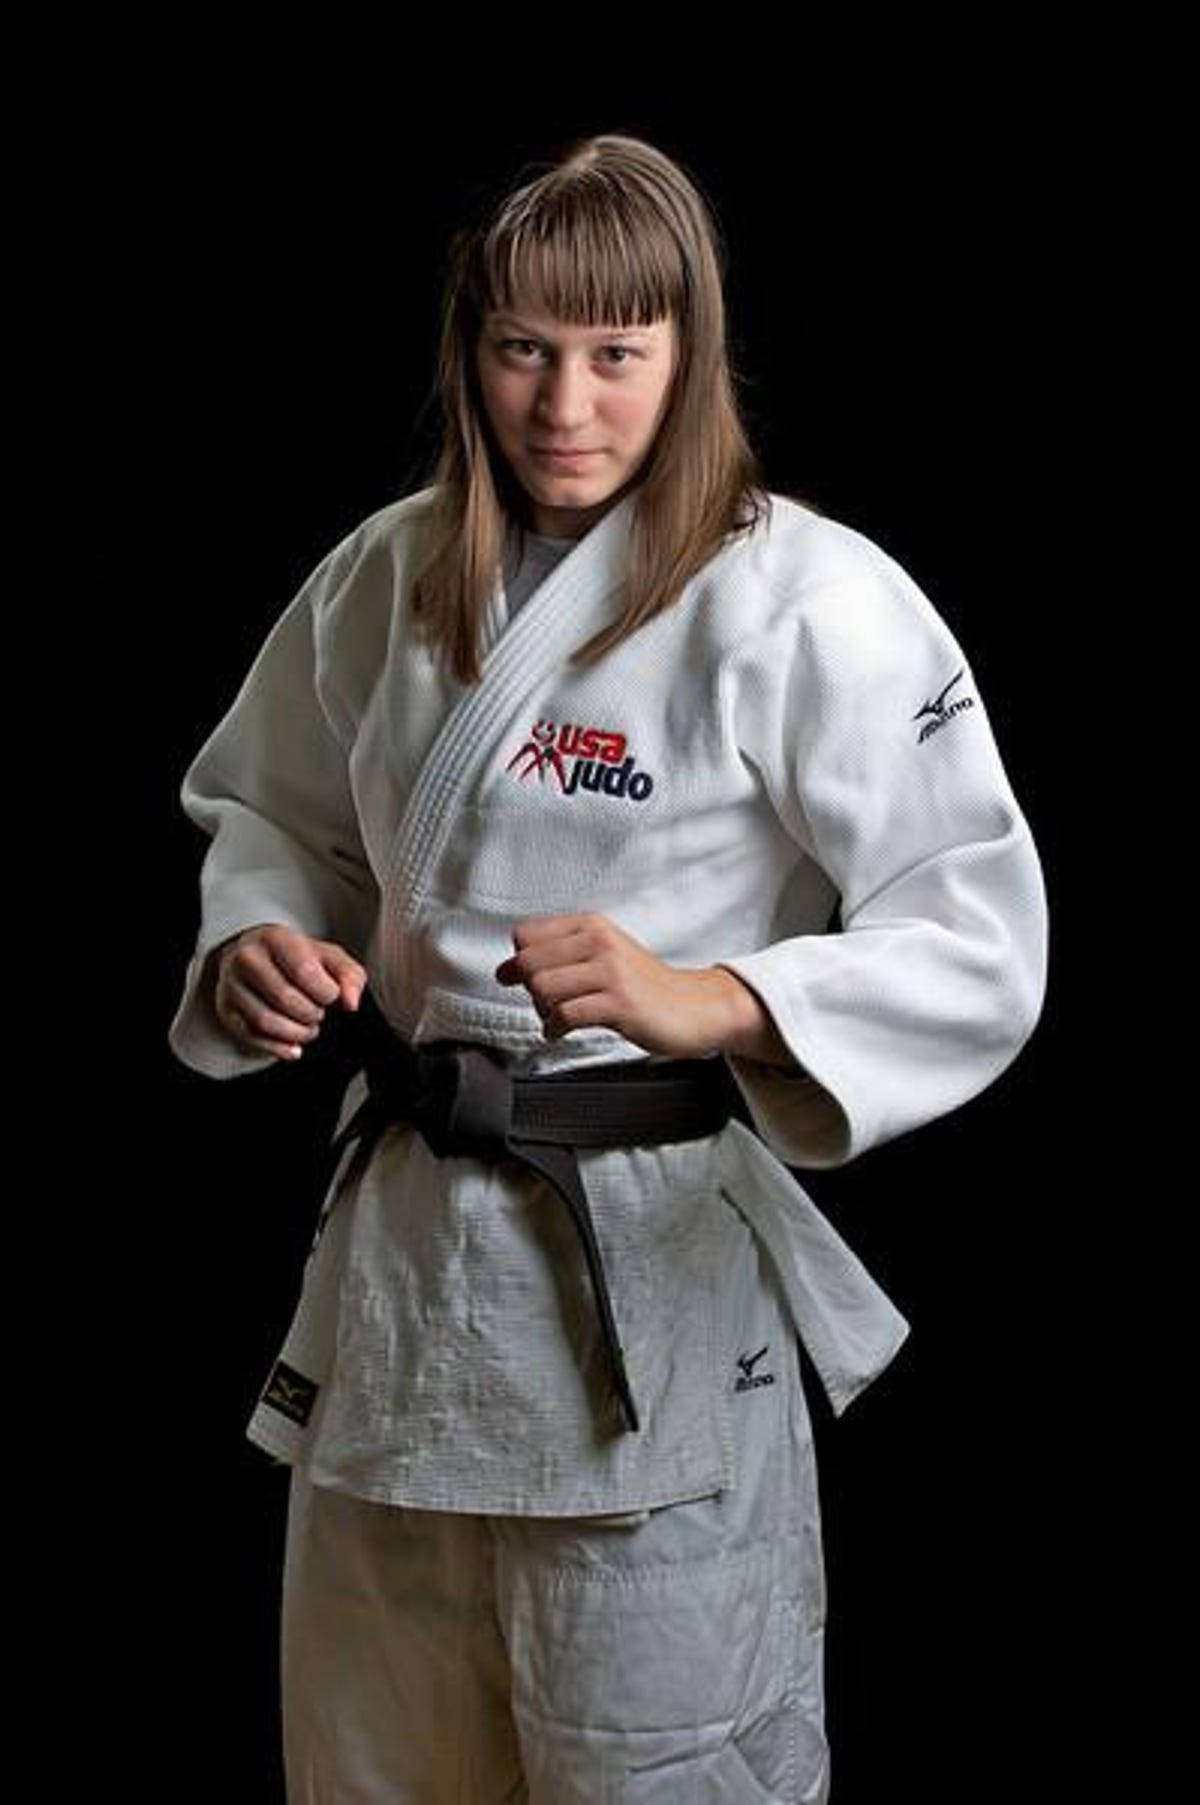 Oshkosh's Katie Sell fights for Olympic spot